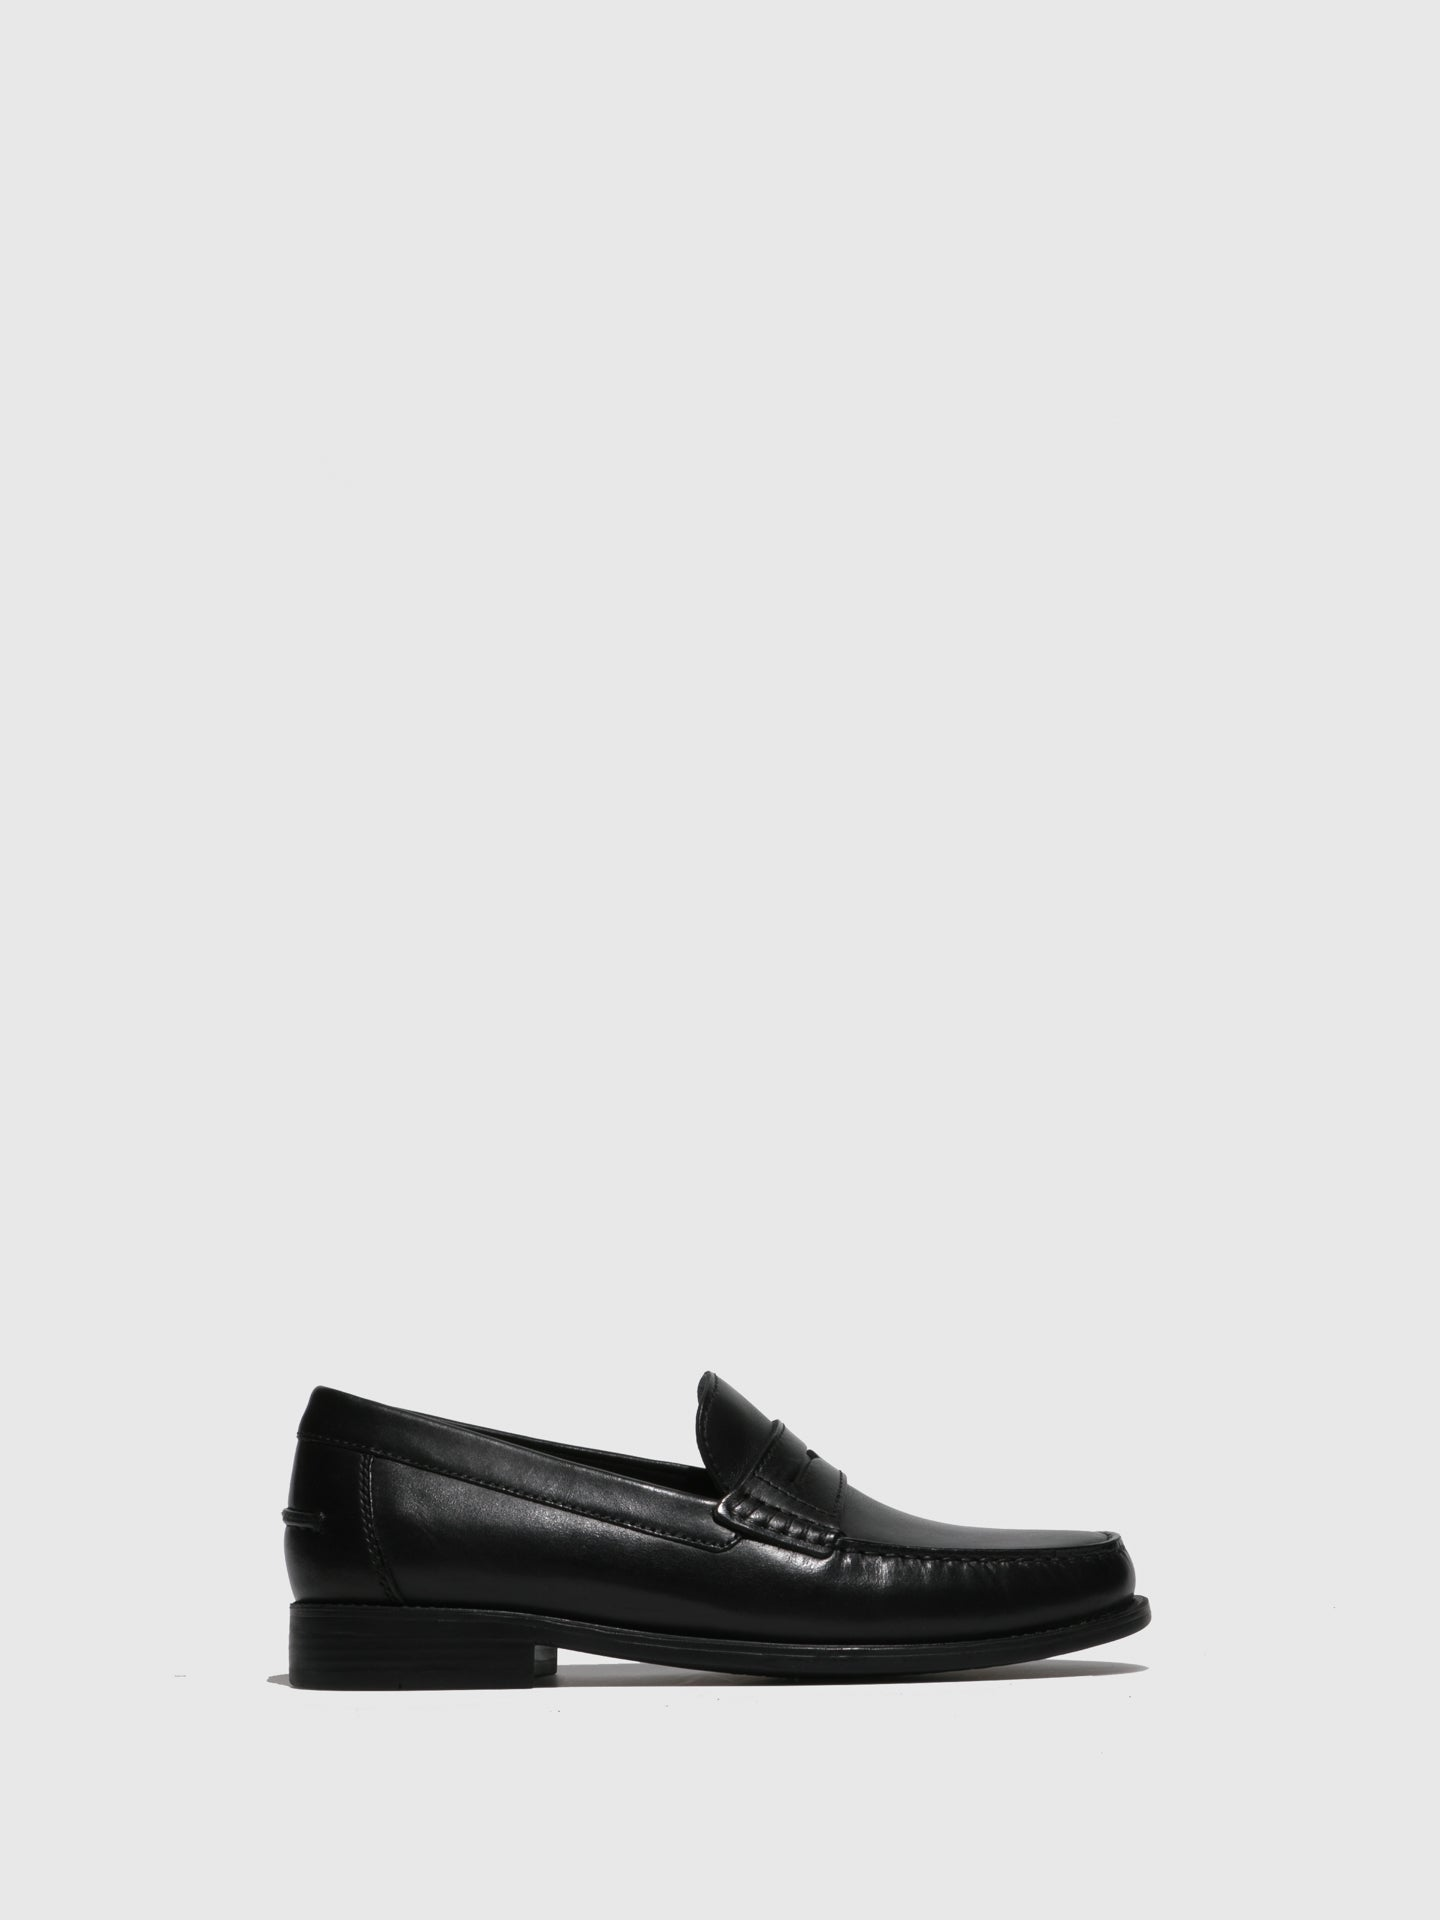 Geox Black Loafers Shoes